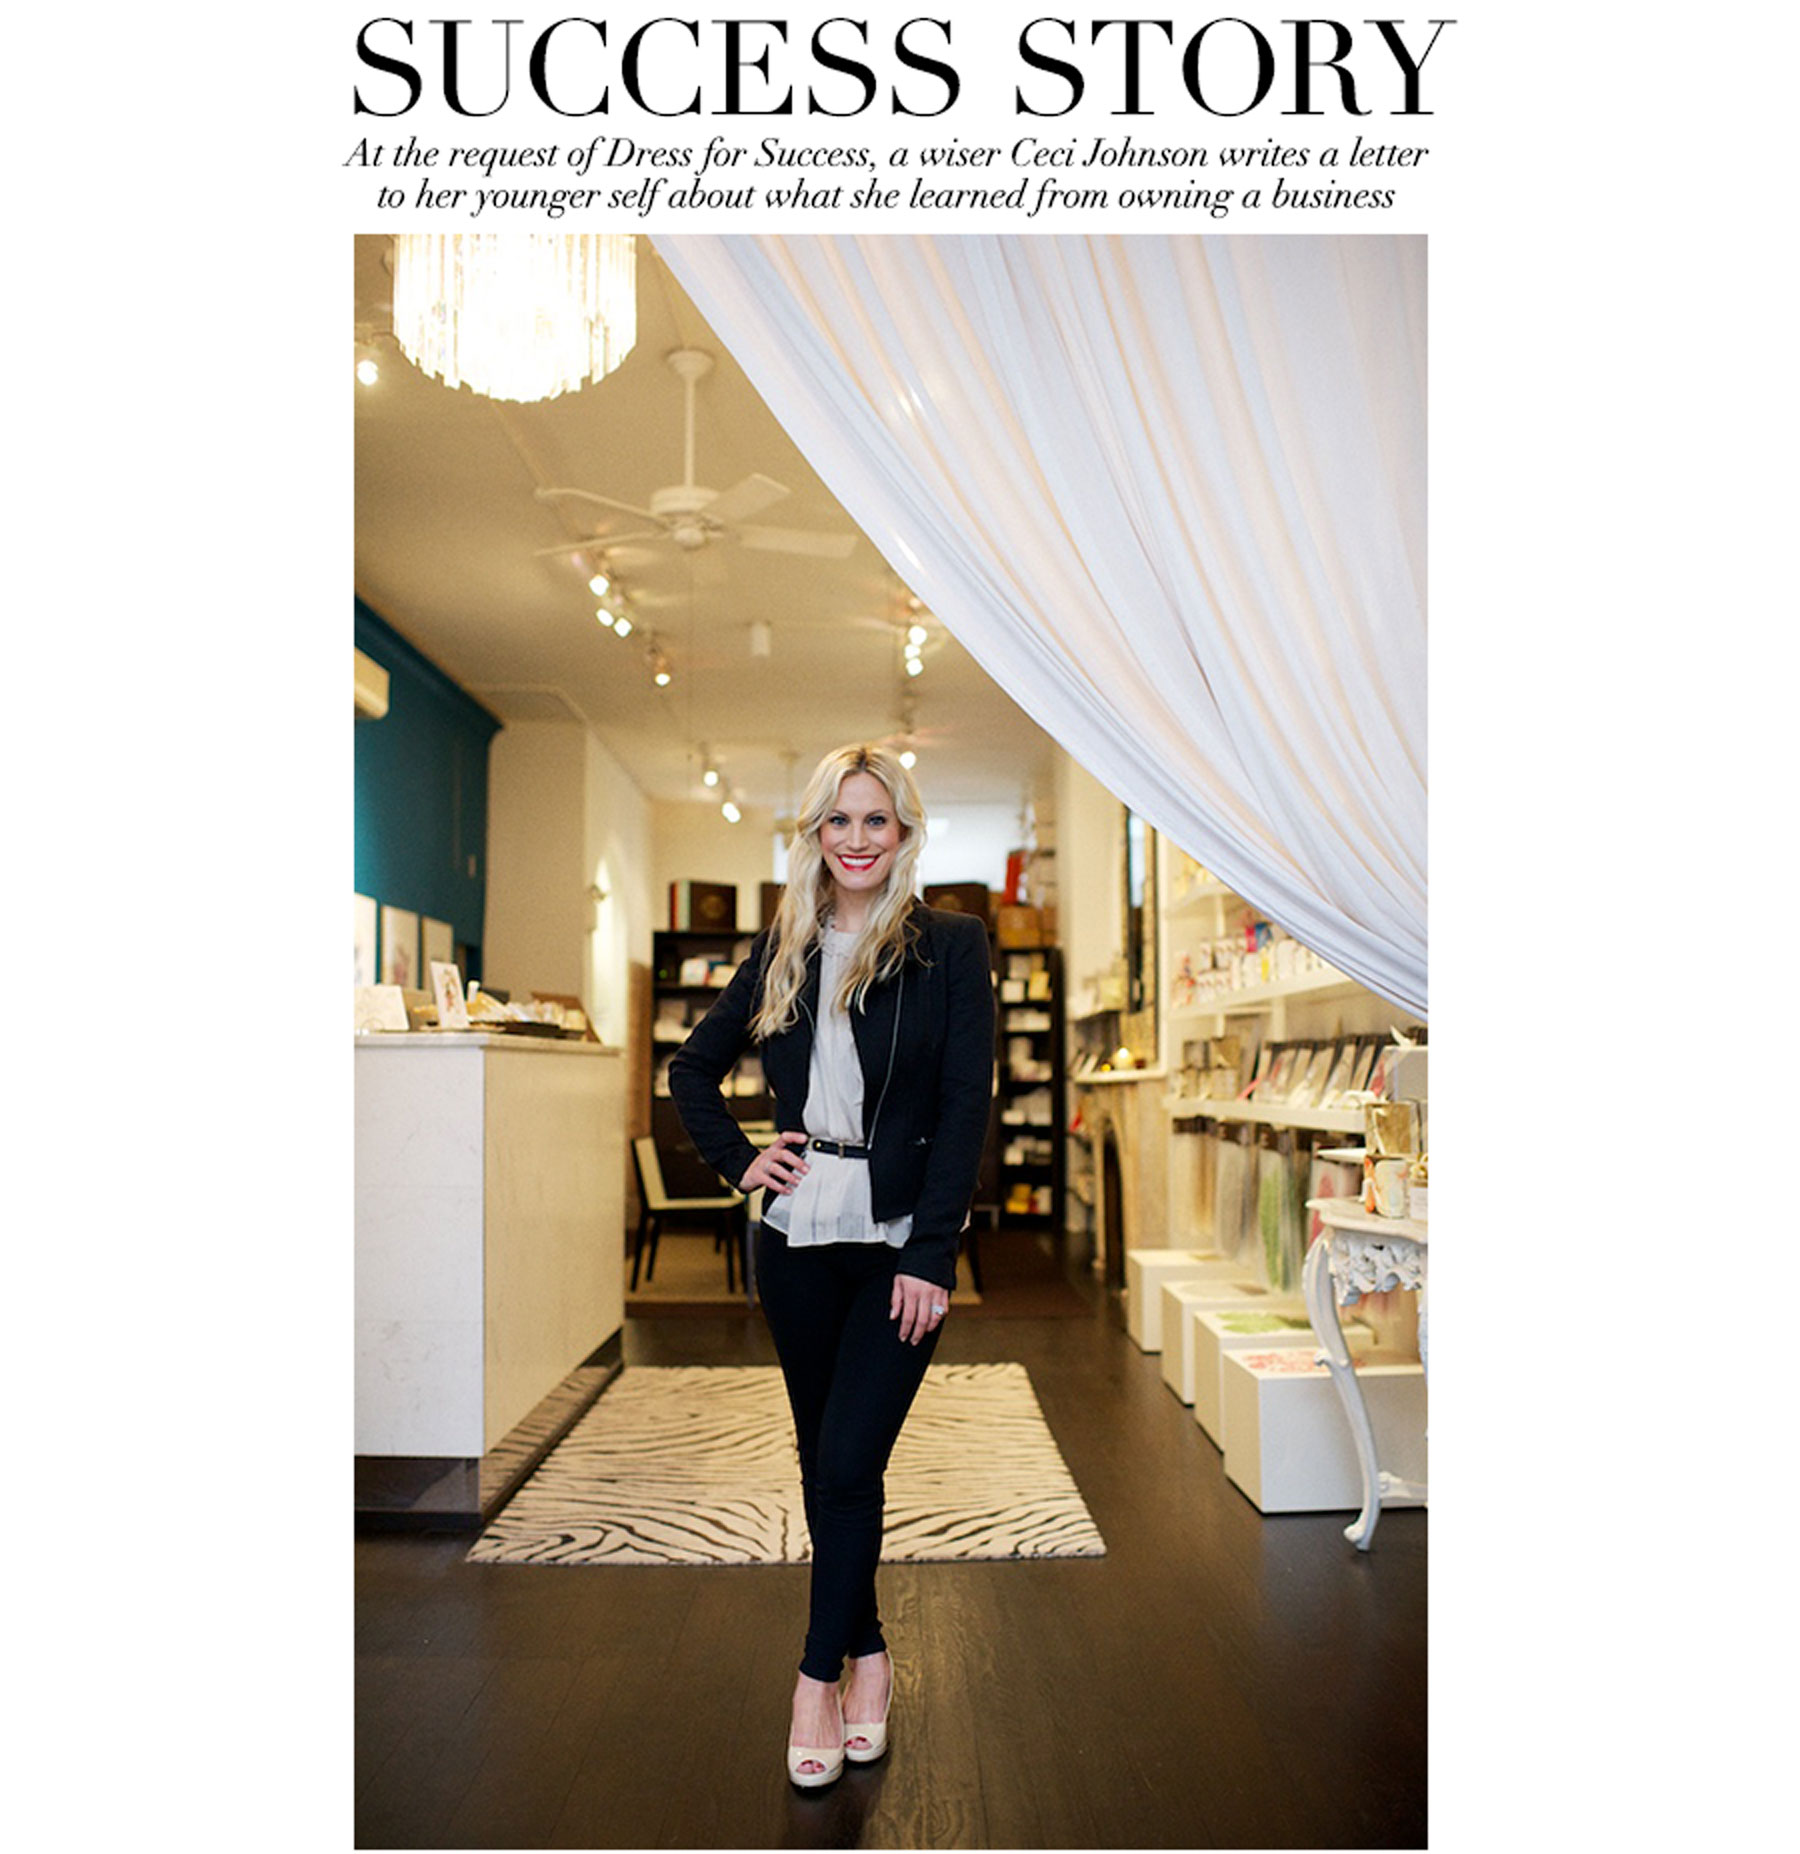 Success Story - At the request of Dress for Success, a wiser Ceci Johnson writes a letter to her younger self about the lessons learned from owning a business